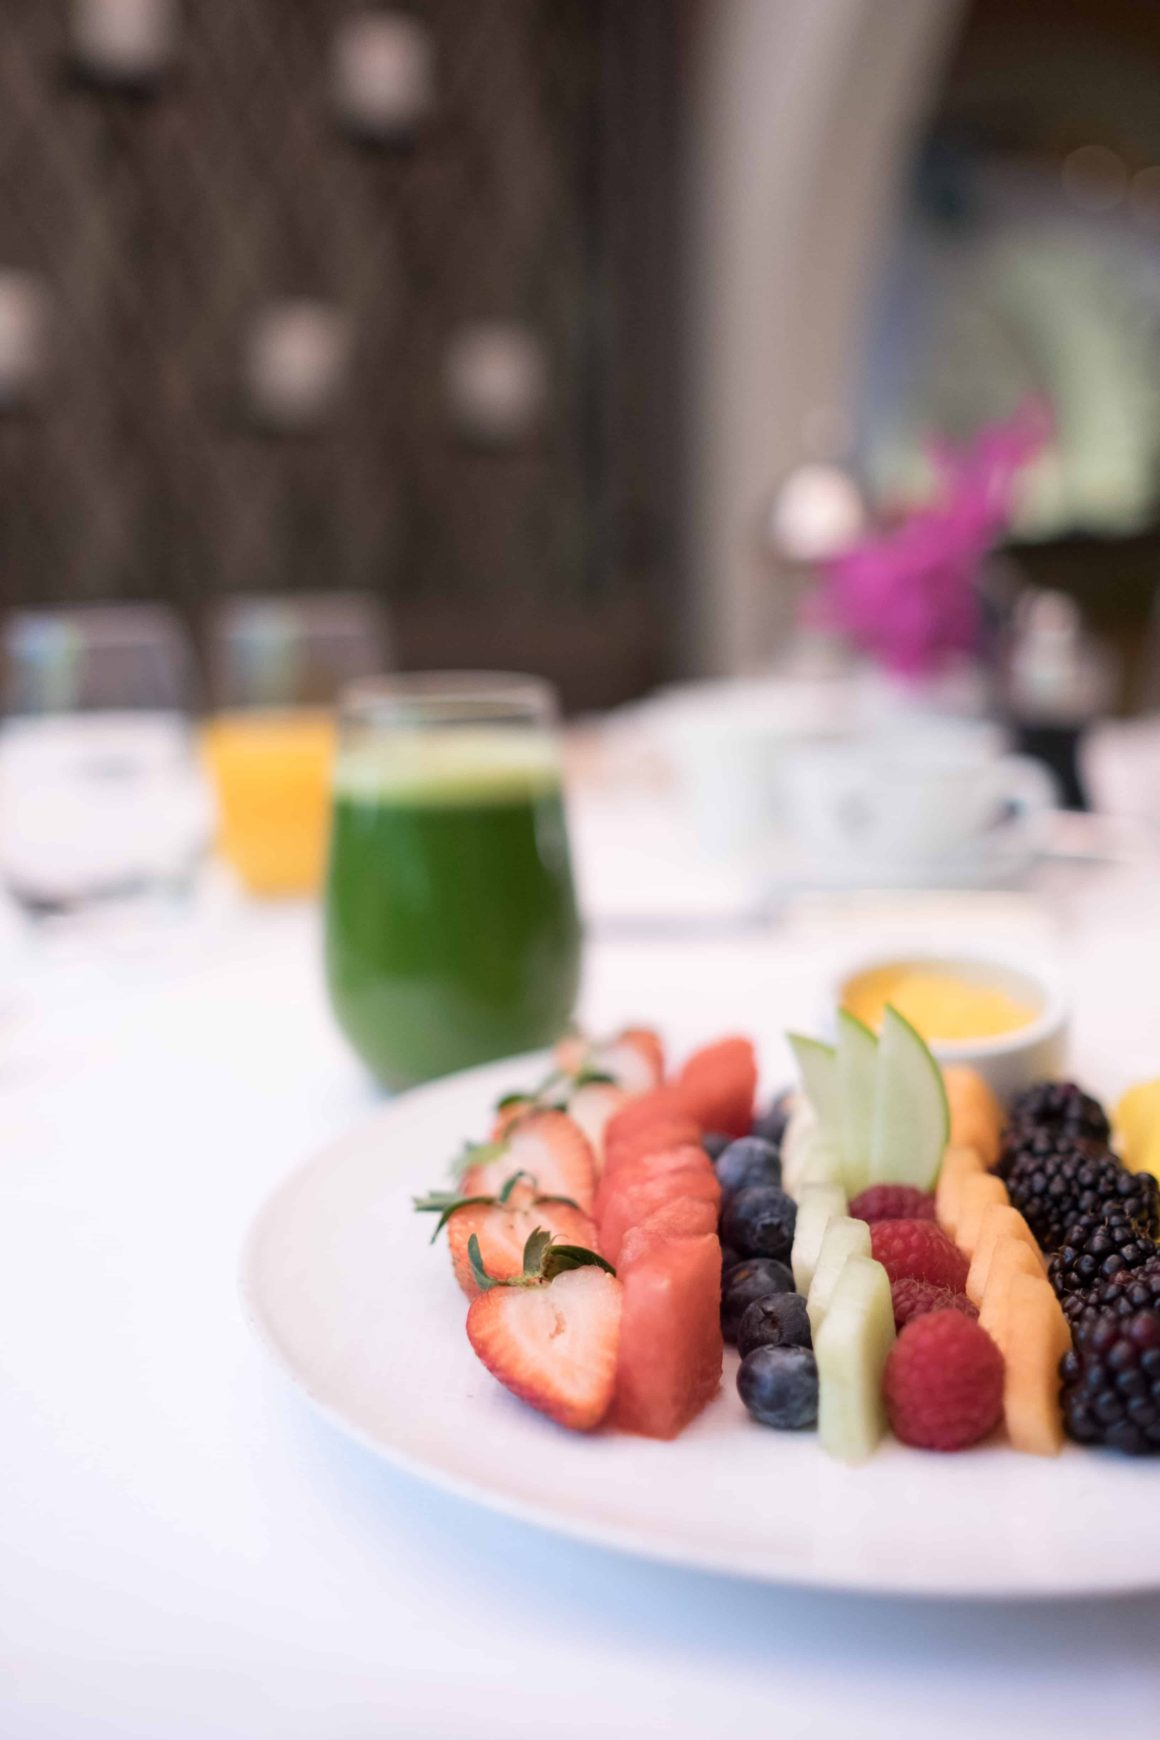 BREAKFAST AT HOTEL BEL AIR